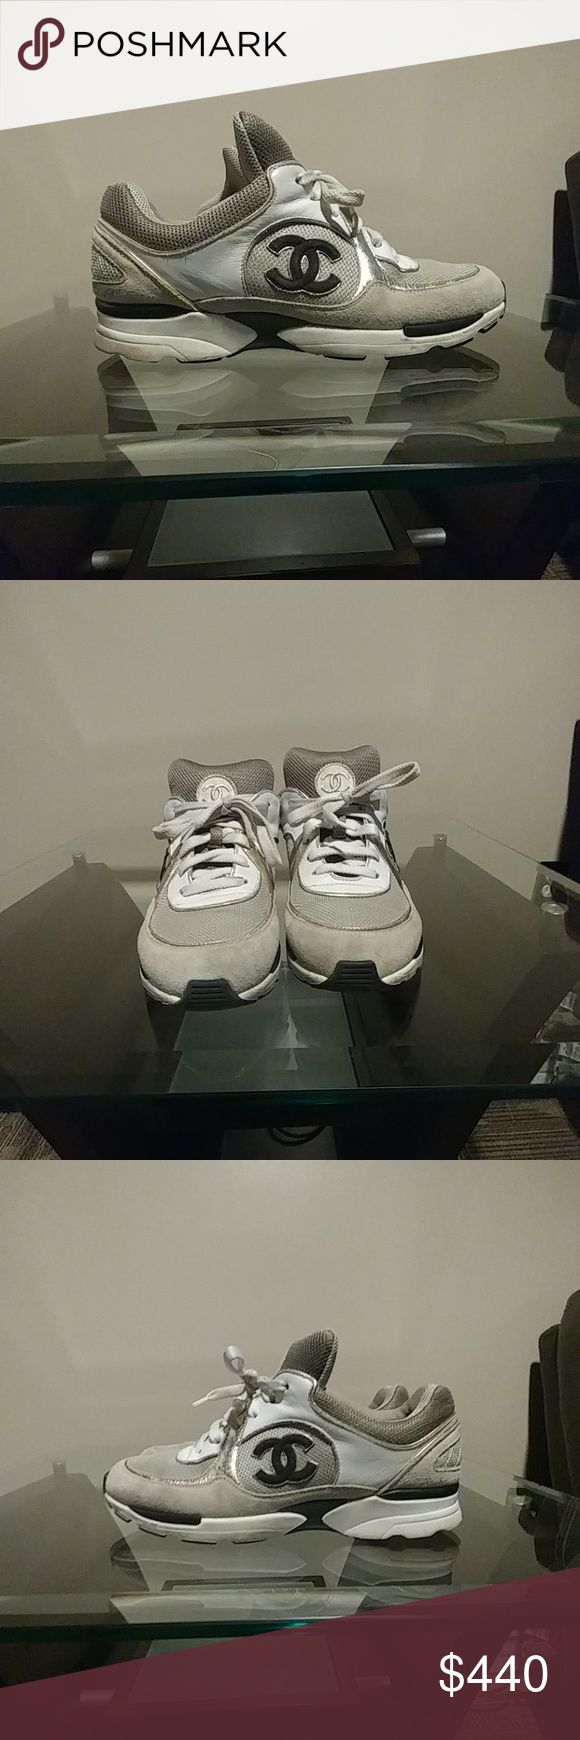 Chanel trainers size 40 1/2 Chanel tennis shoes 100%  authentic Shoes Sneakers